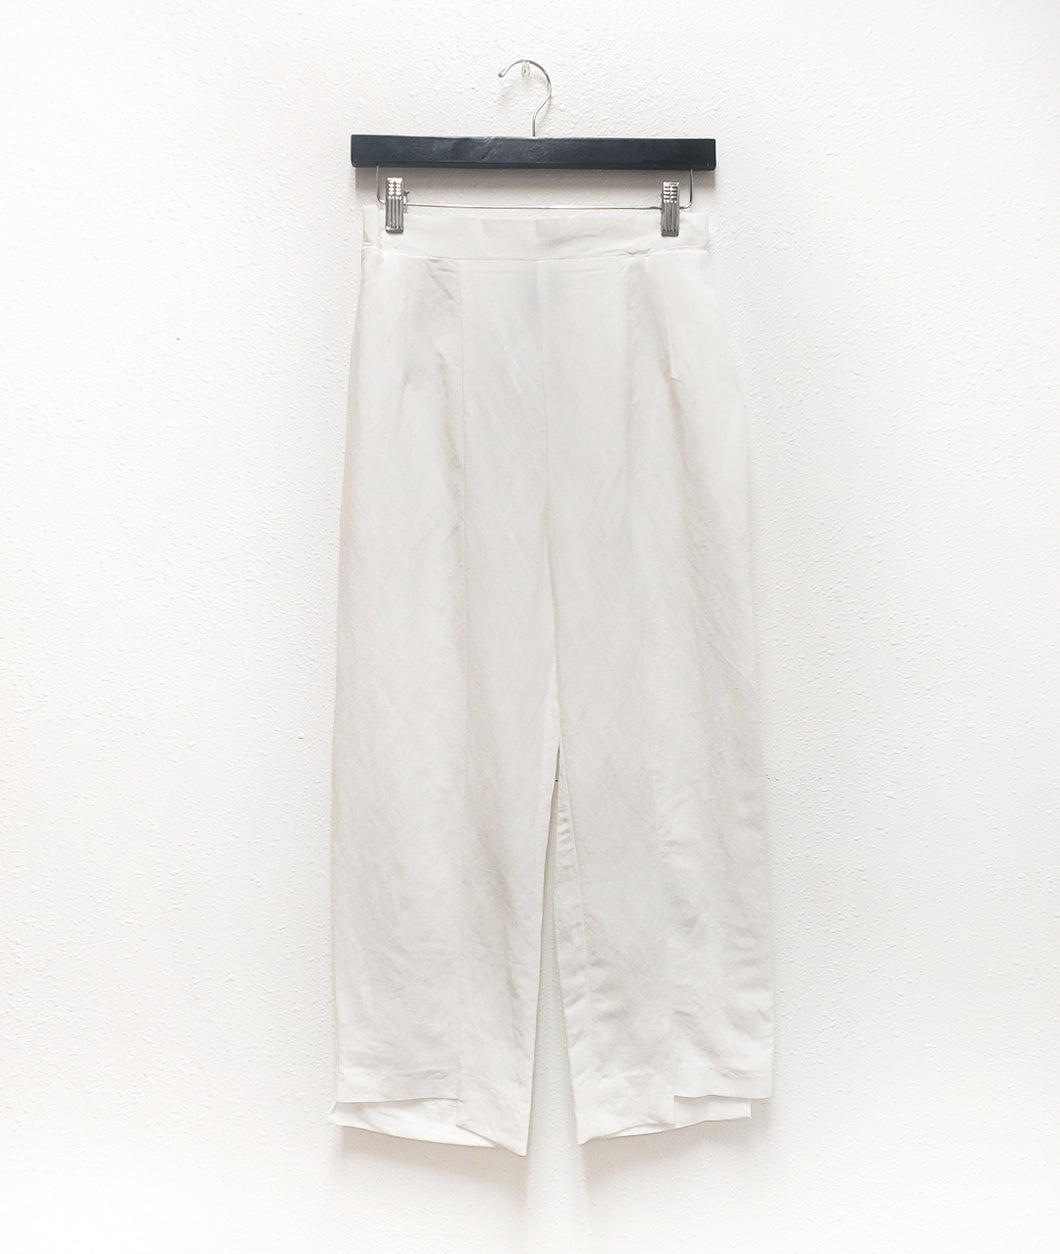 a slim white pant with an uneven hem on a black hanger